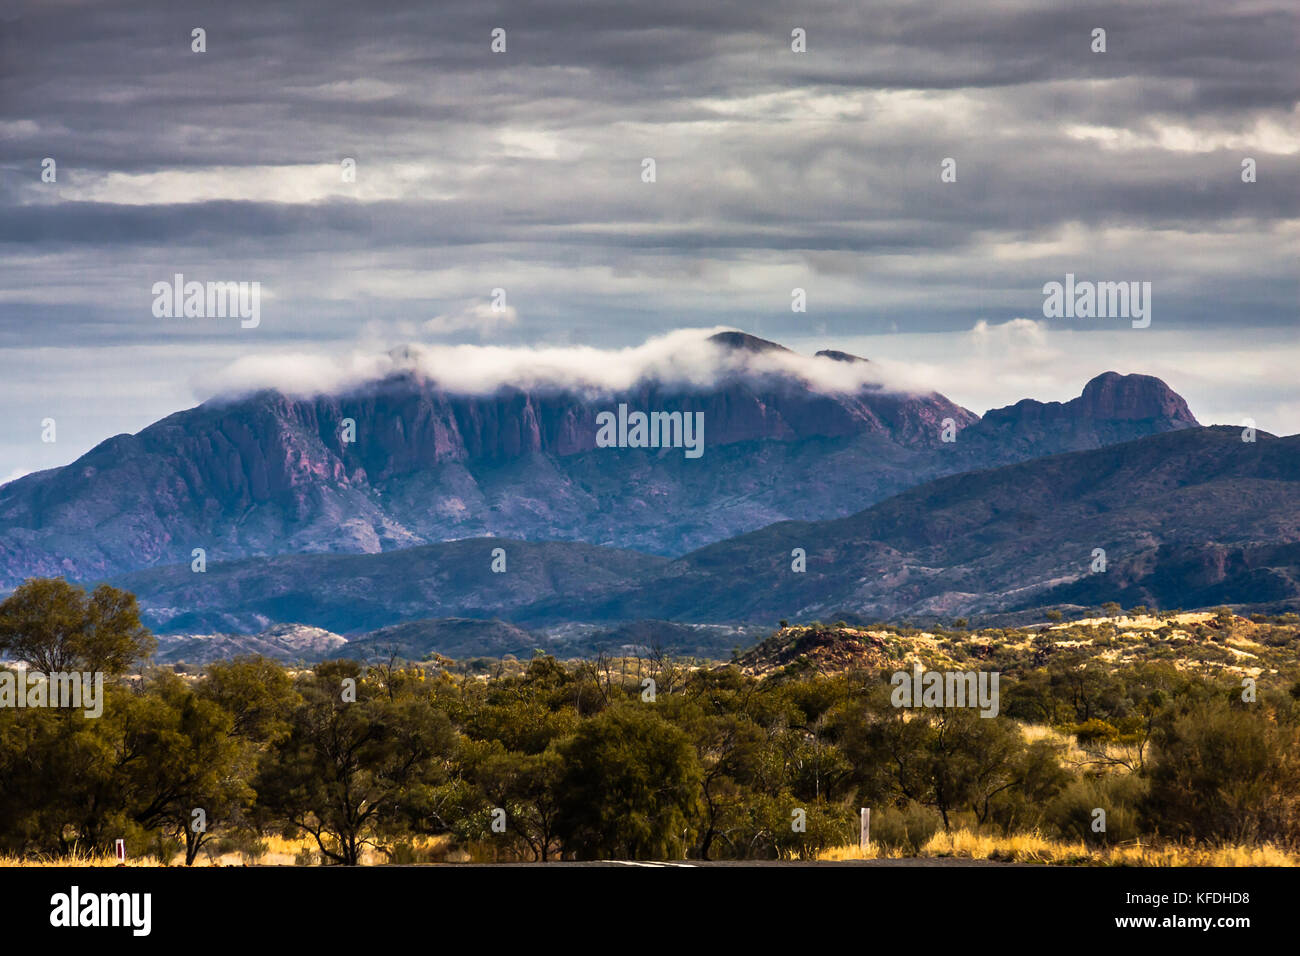 West MacDonnell Range National Park, Northern Territory, Australia Stock Photo